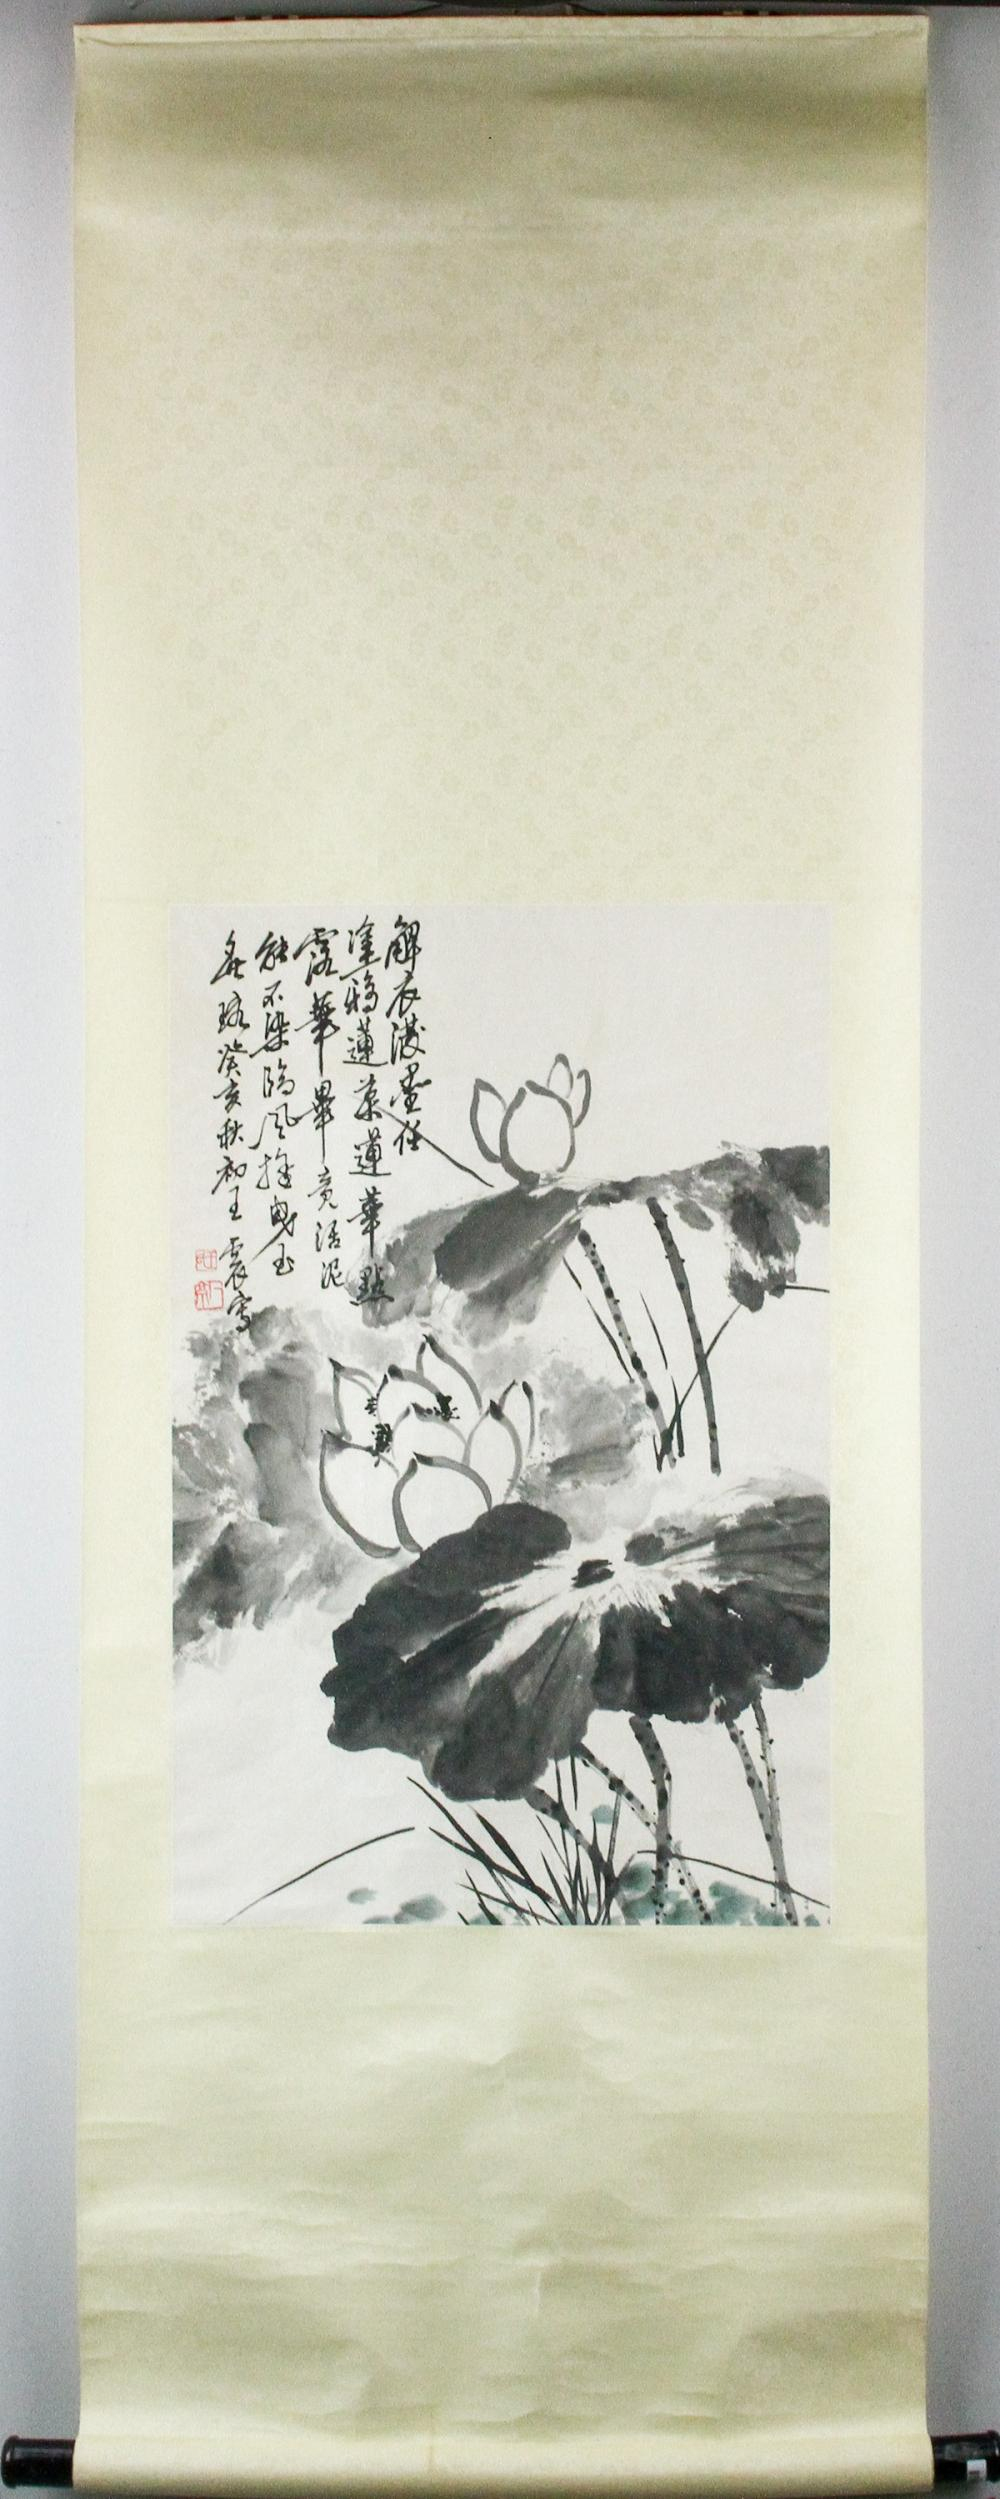 Lot 105: Wang Zhen 1866-1938 Chinese Watercolor Scroll